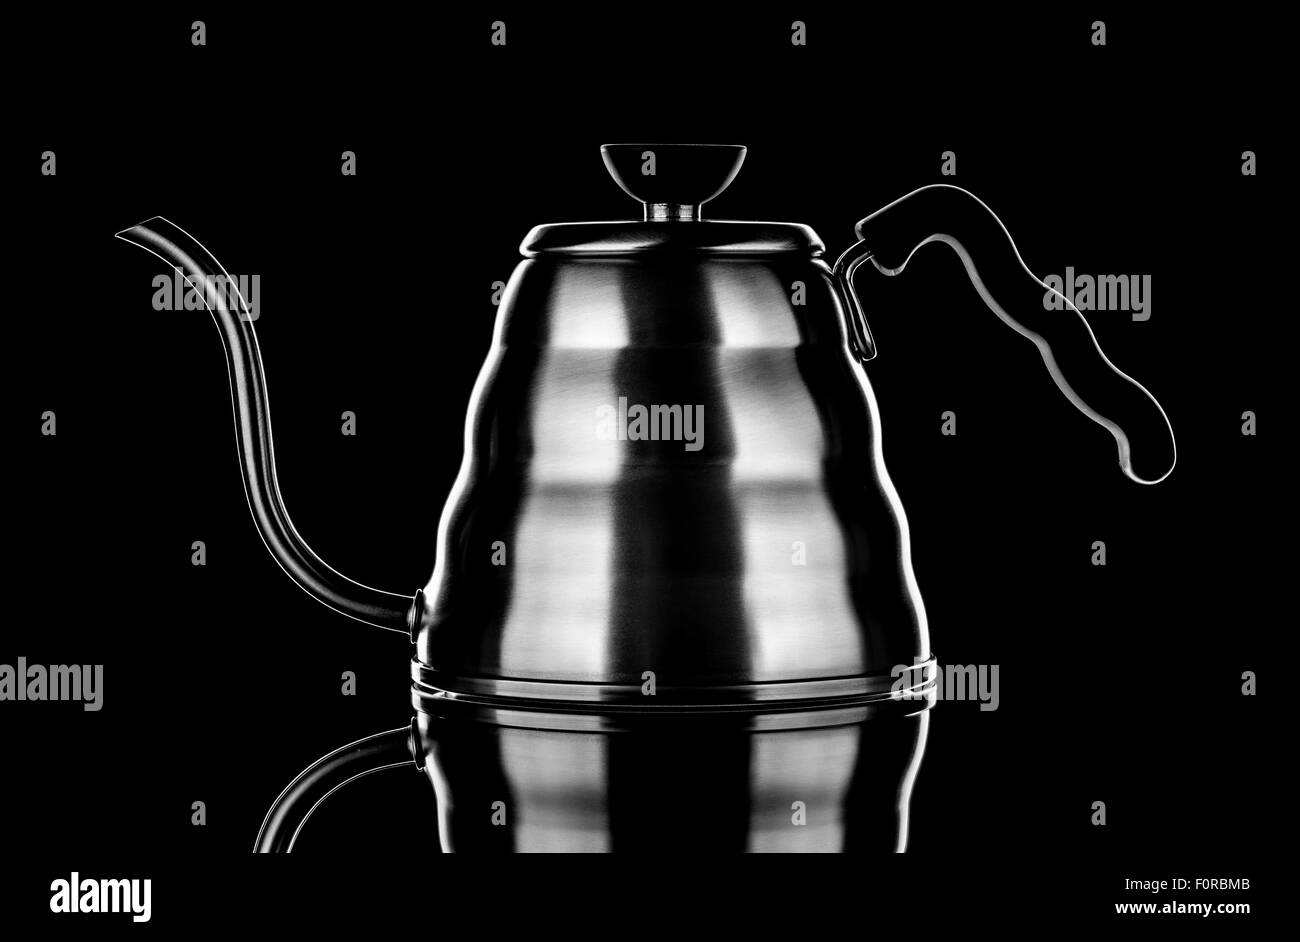 Hario aluminium drip kettle for coffee brewing - Stock Image